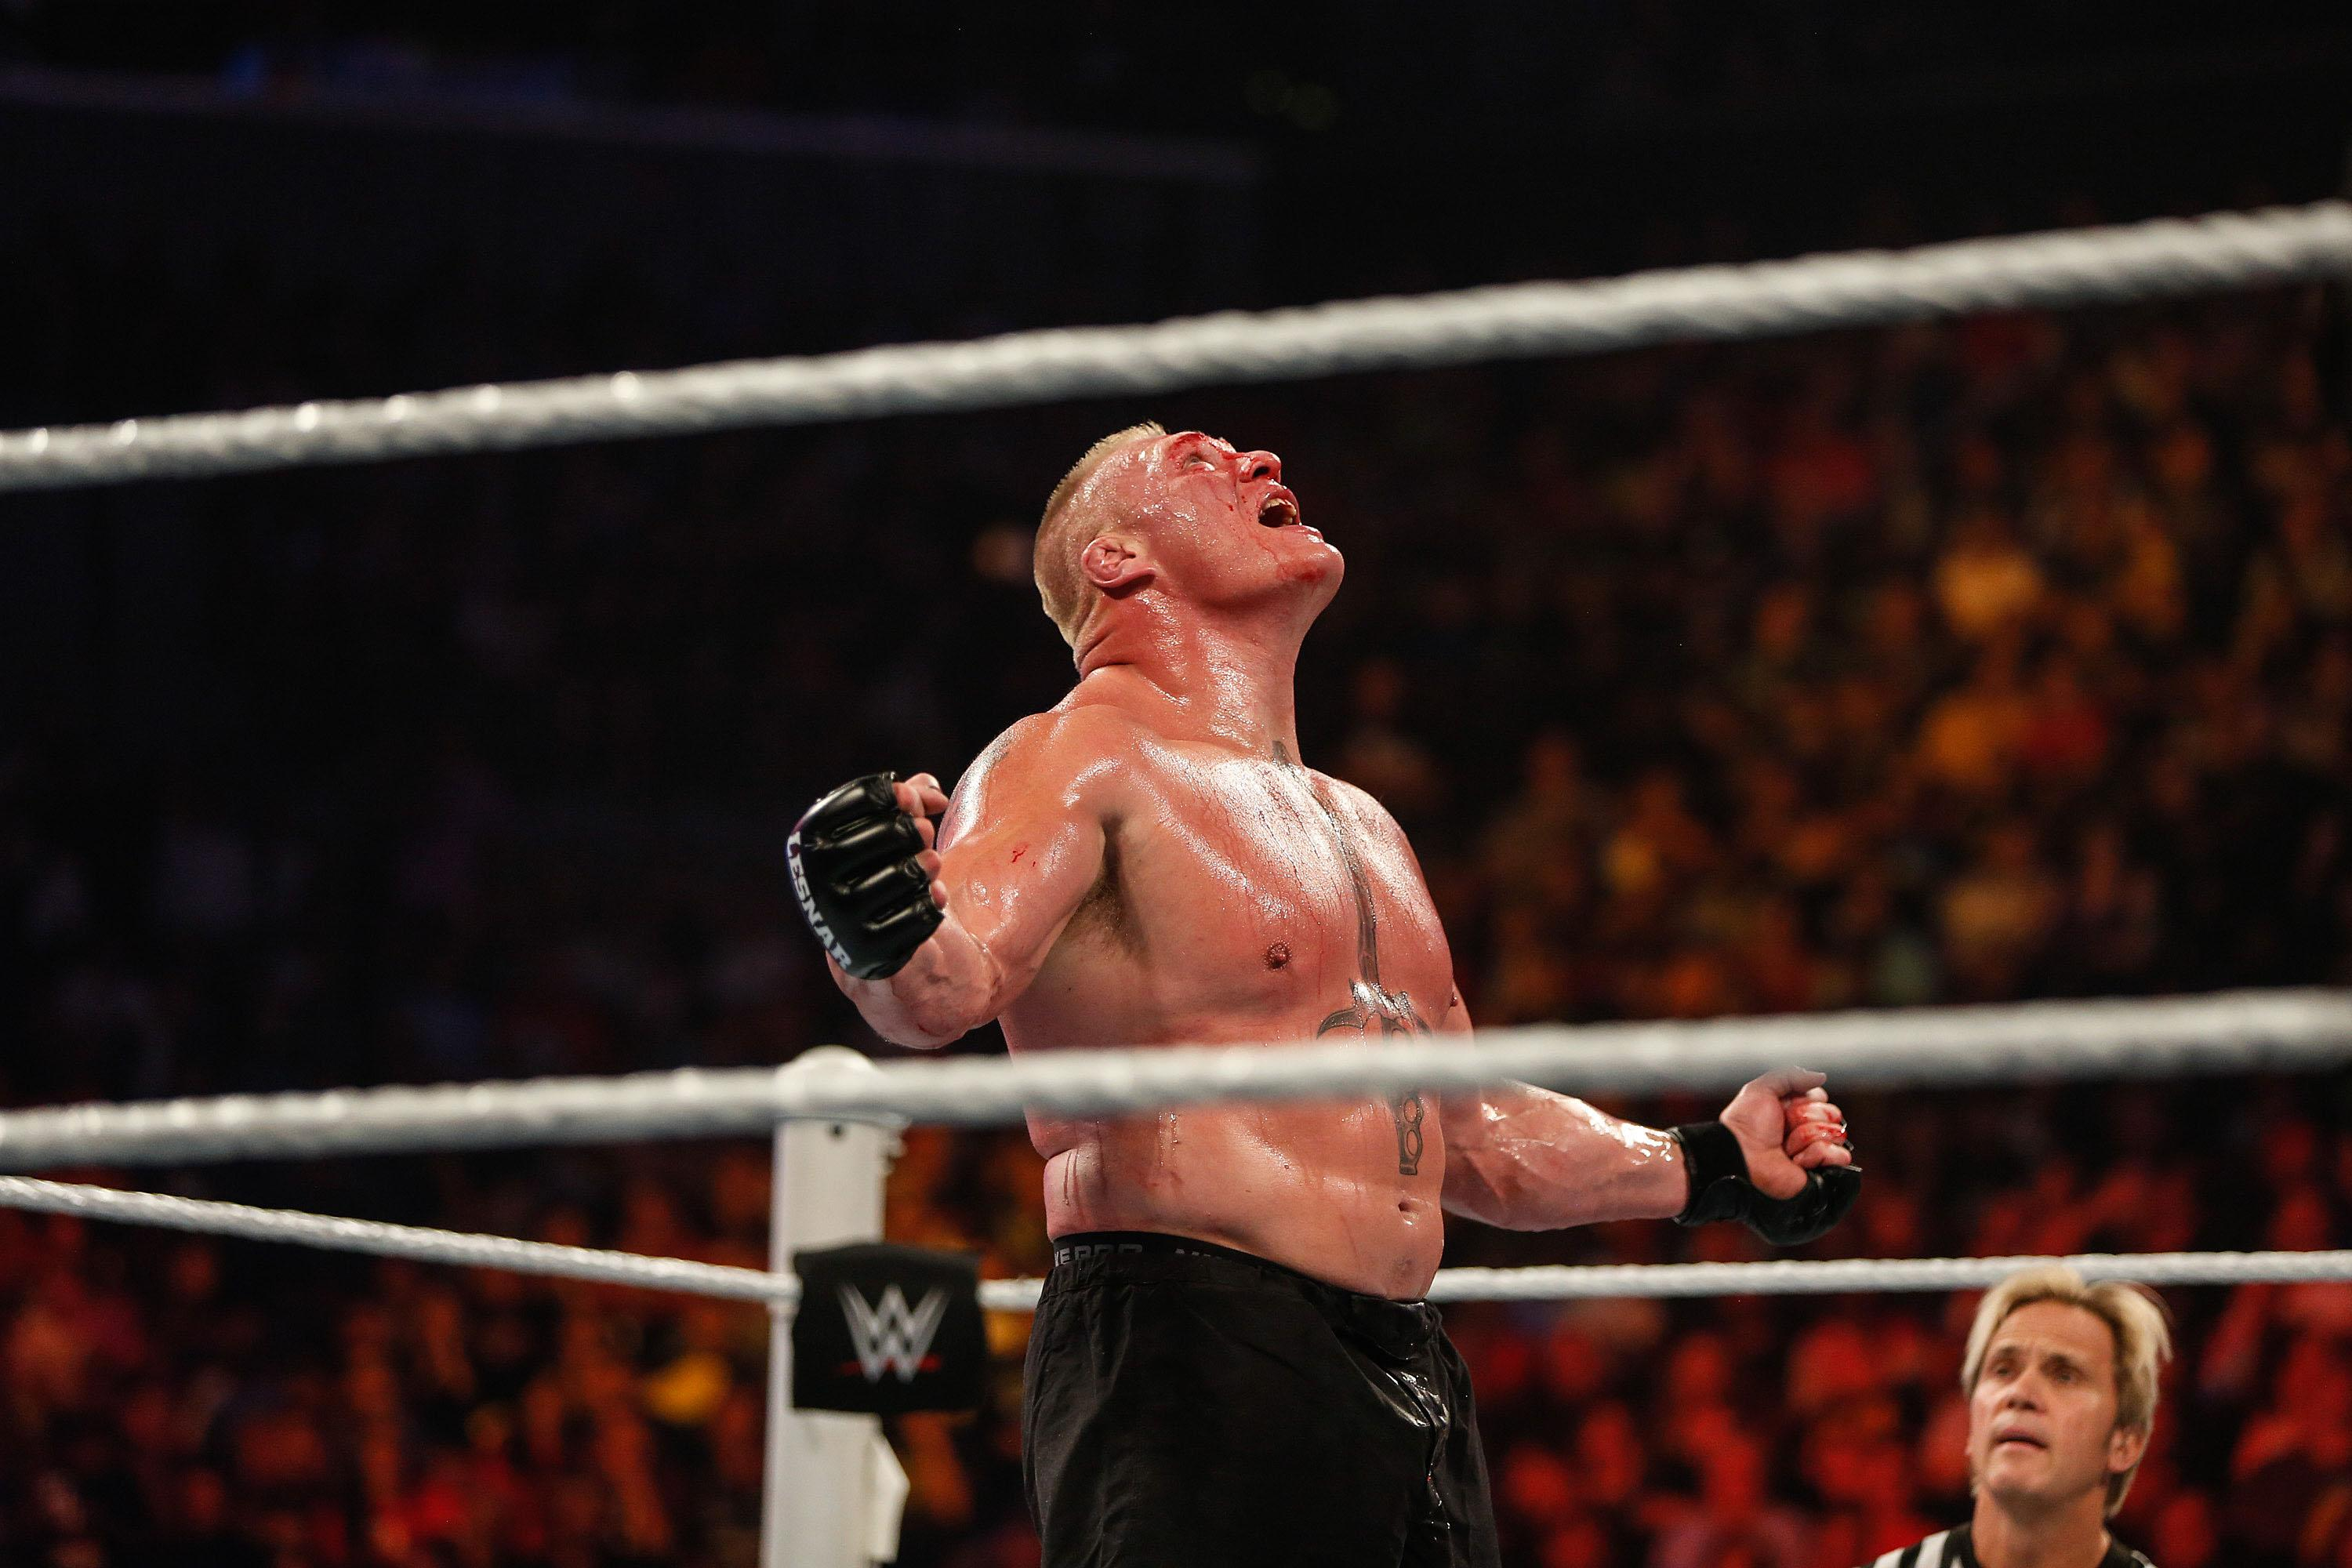 WWE Royal Rumble: Brock Lesnar to compete in 30-man match